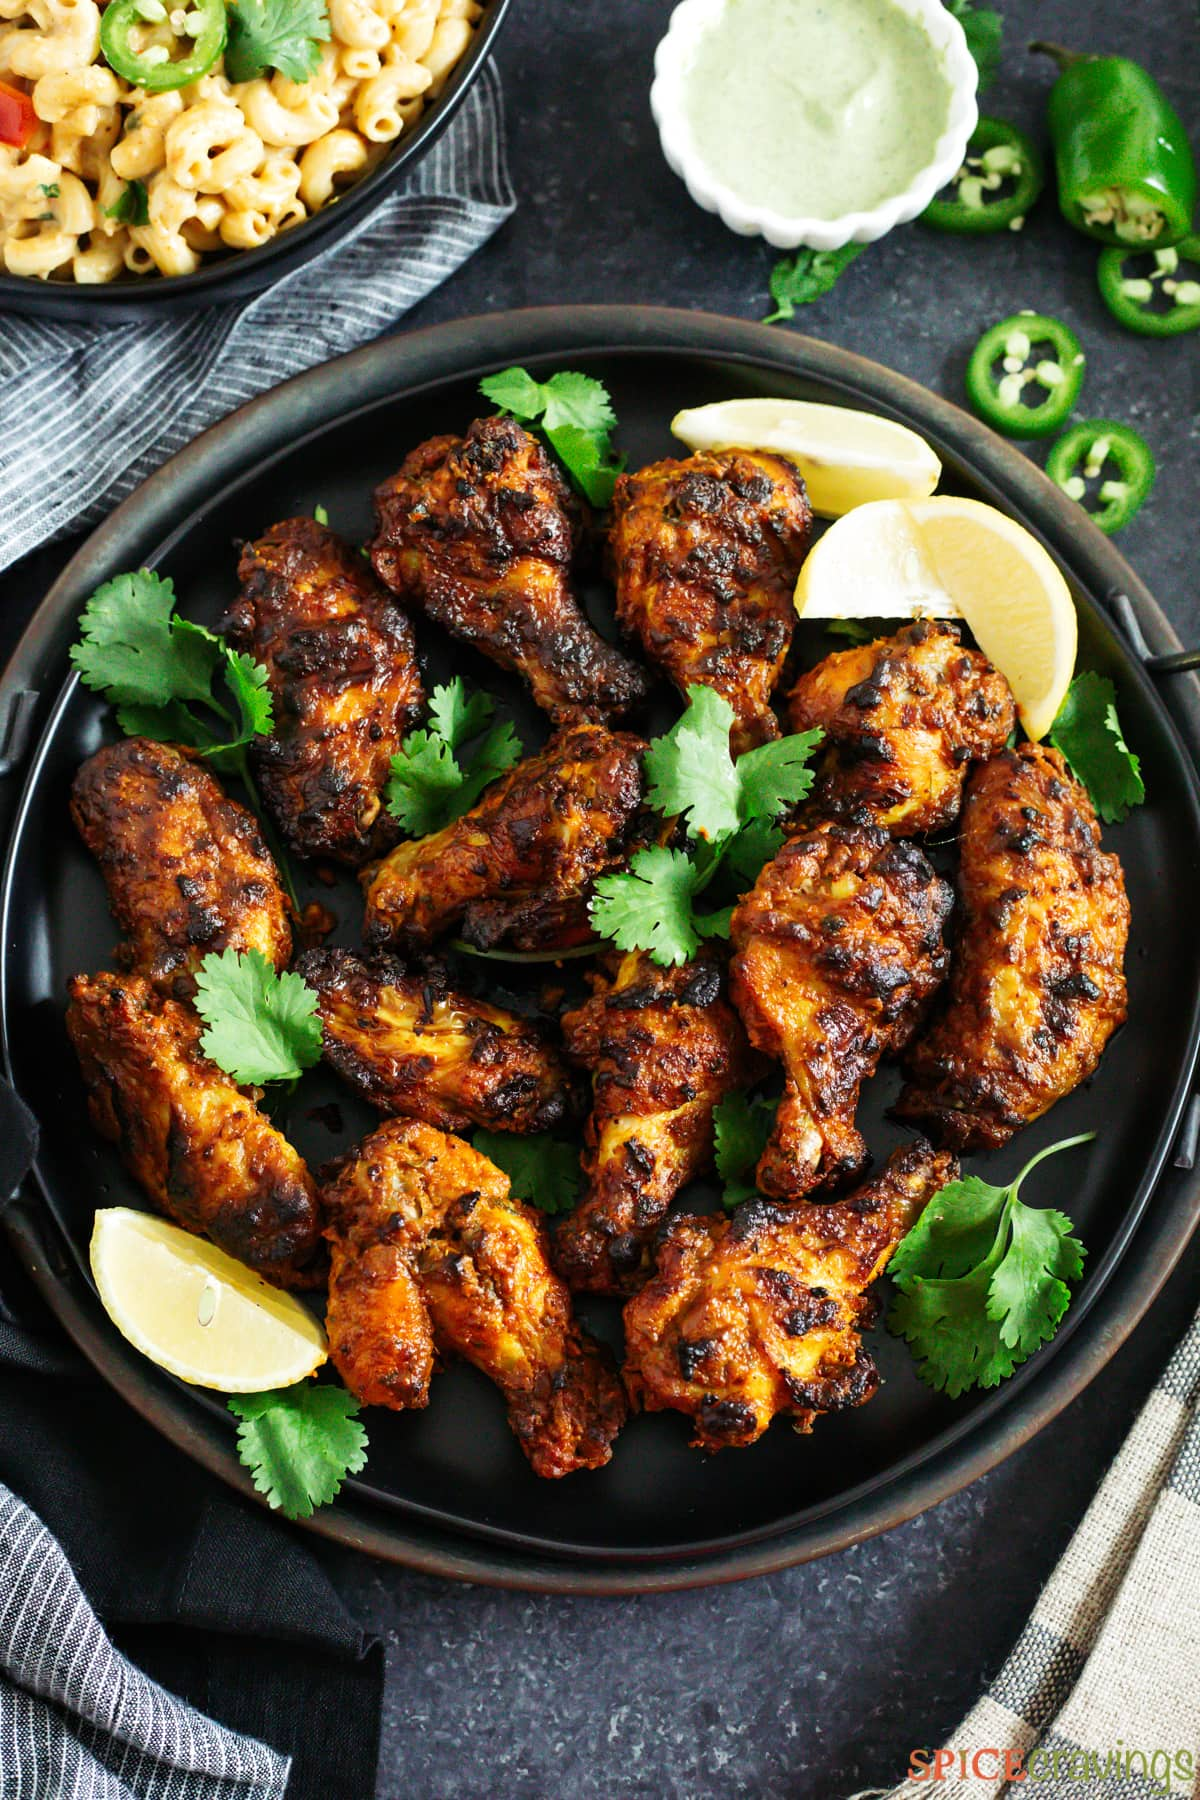 Tandoori chicken wings on a plate with wedges of lemon and cilantro